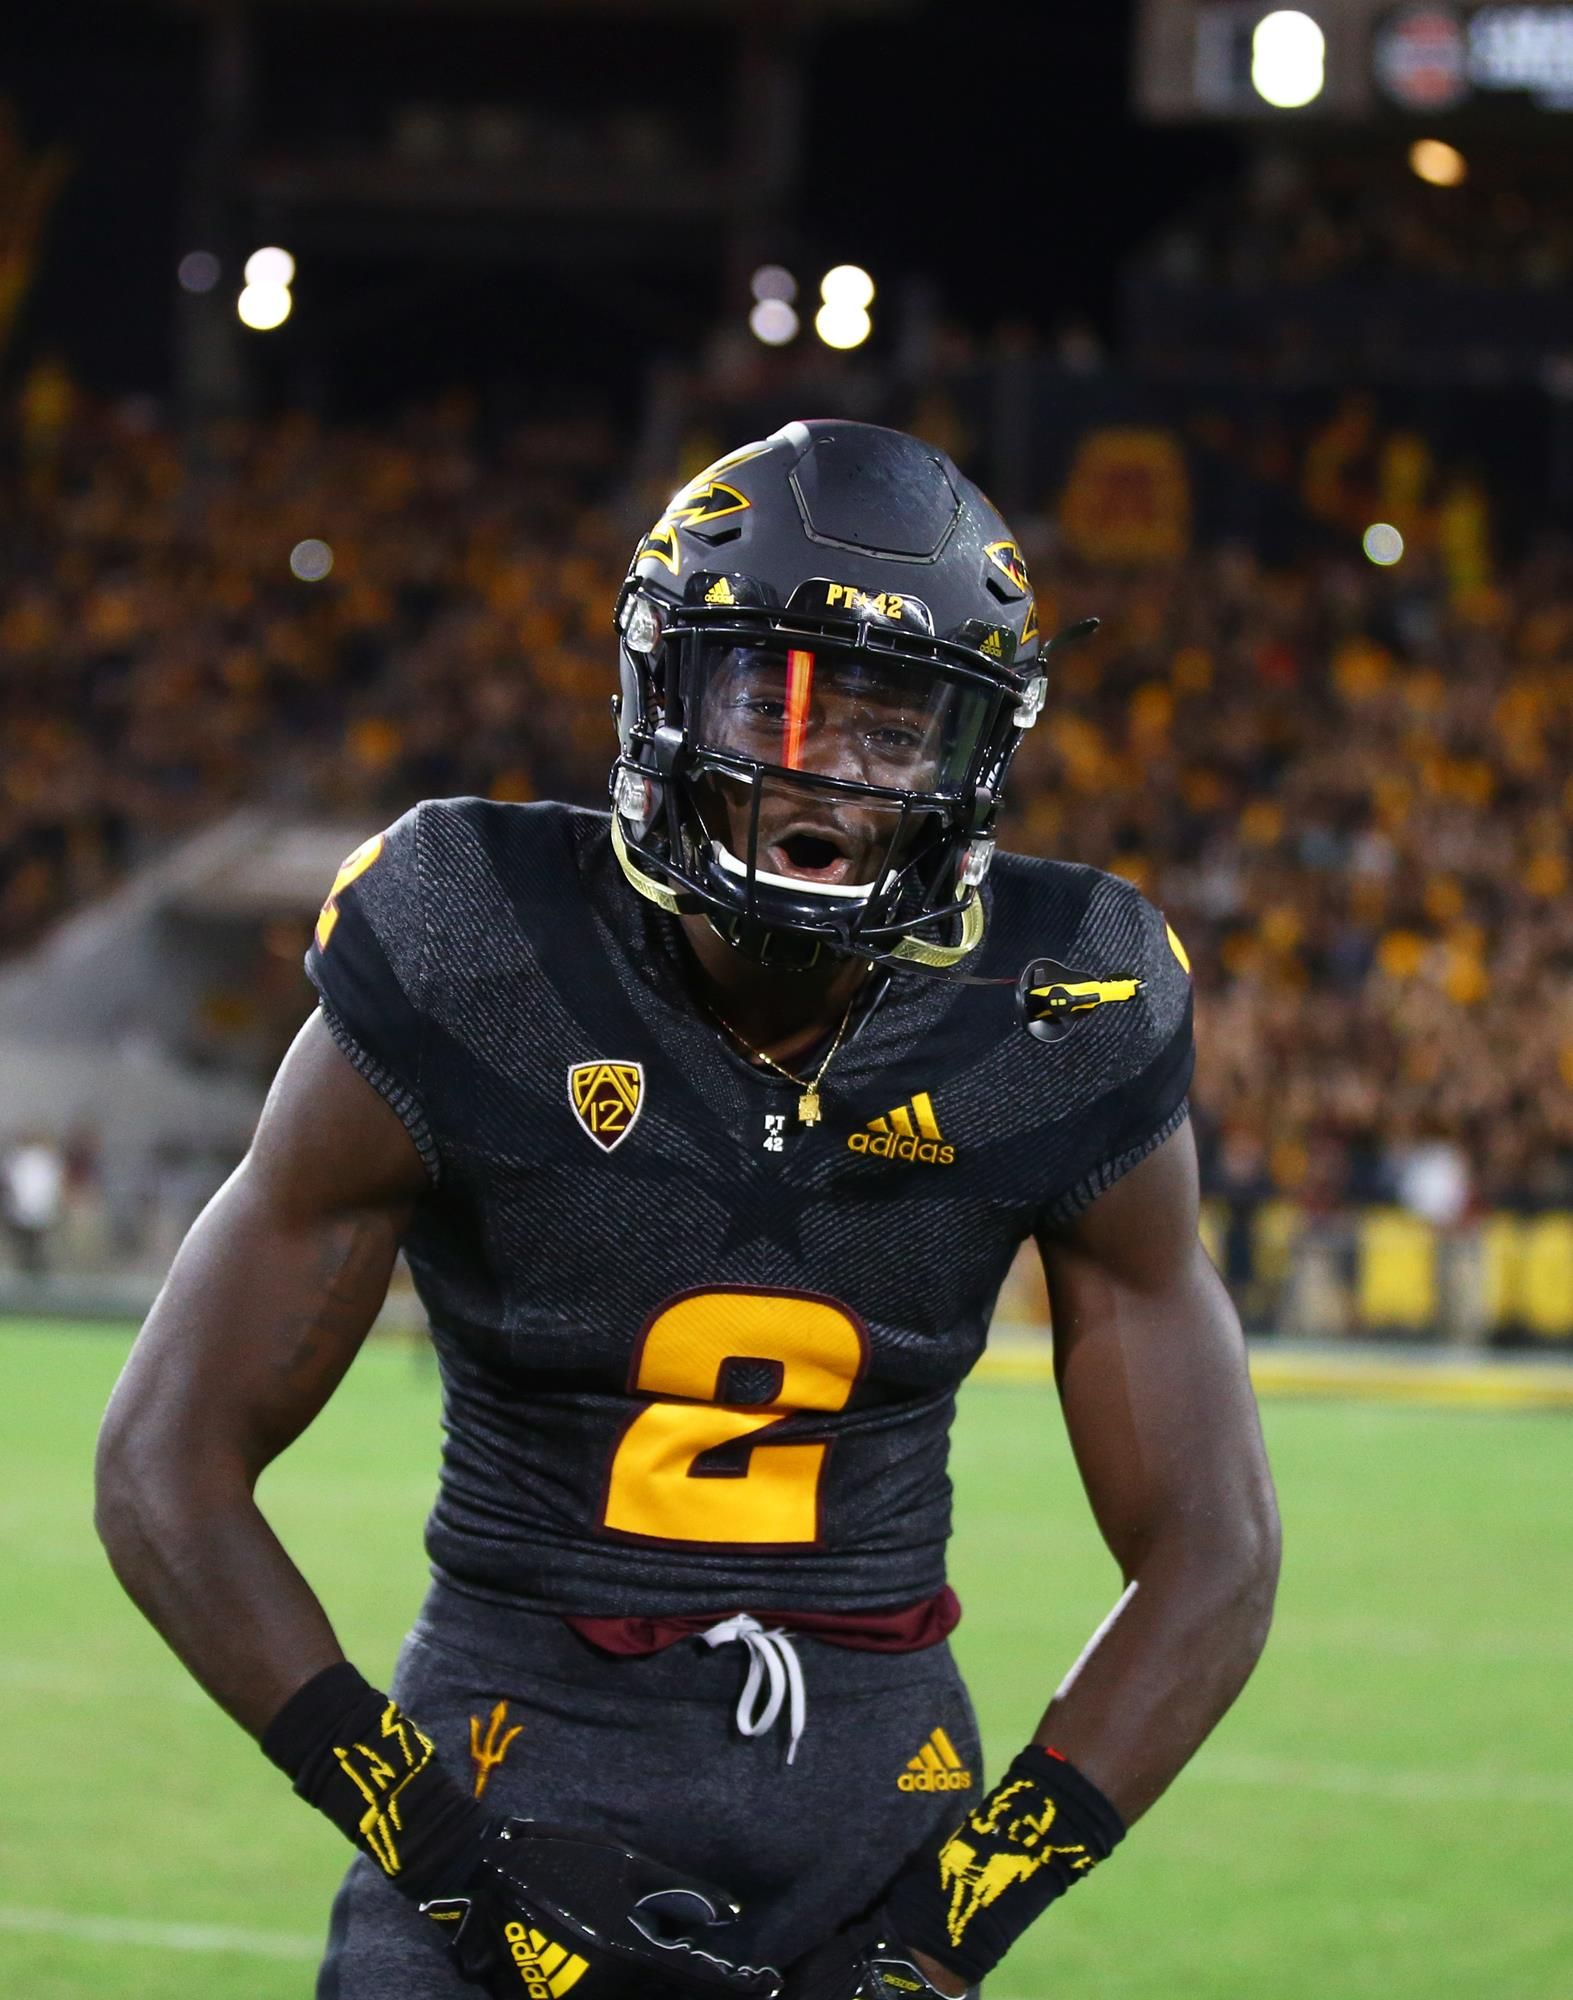 Brandon Aiyuk Football Arizona State University Athletics Football College Football Uniforms Football Uniforms